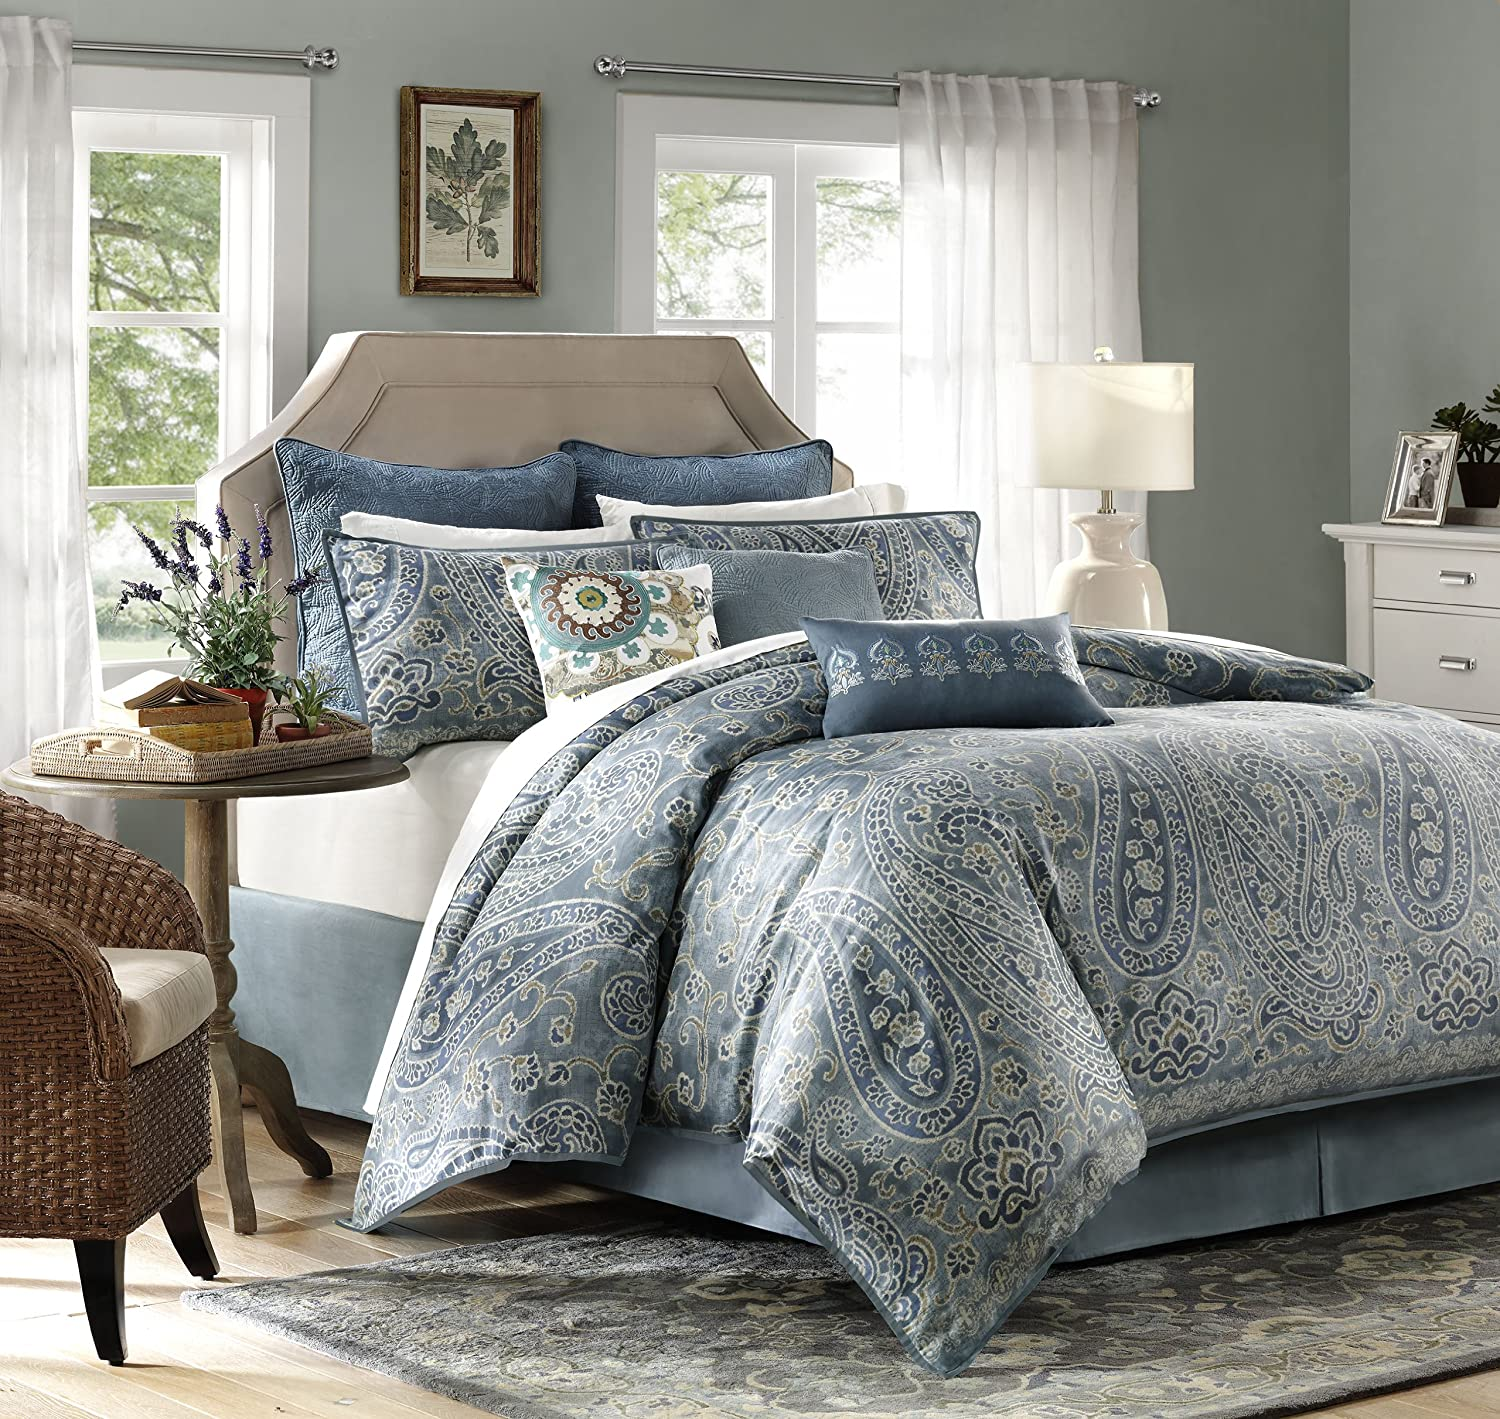 California King Bed Sets at Home and Interior Design Ideas